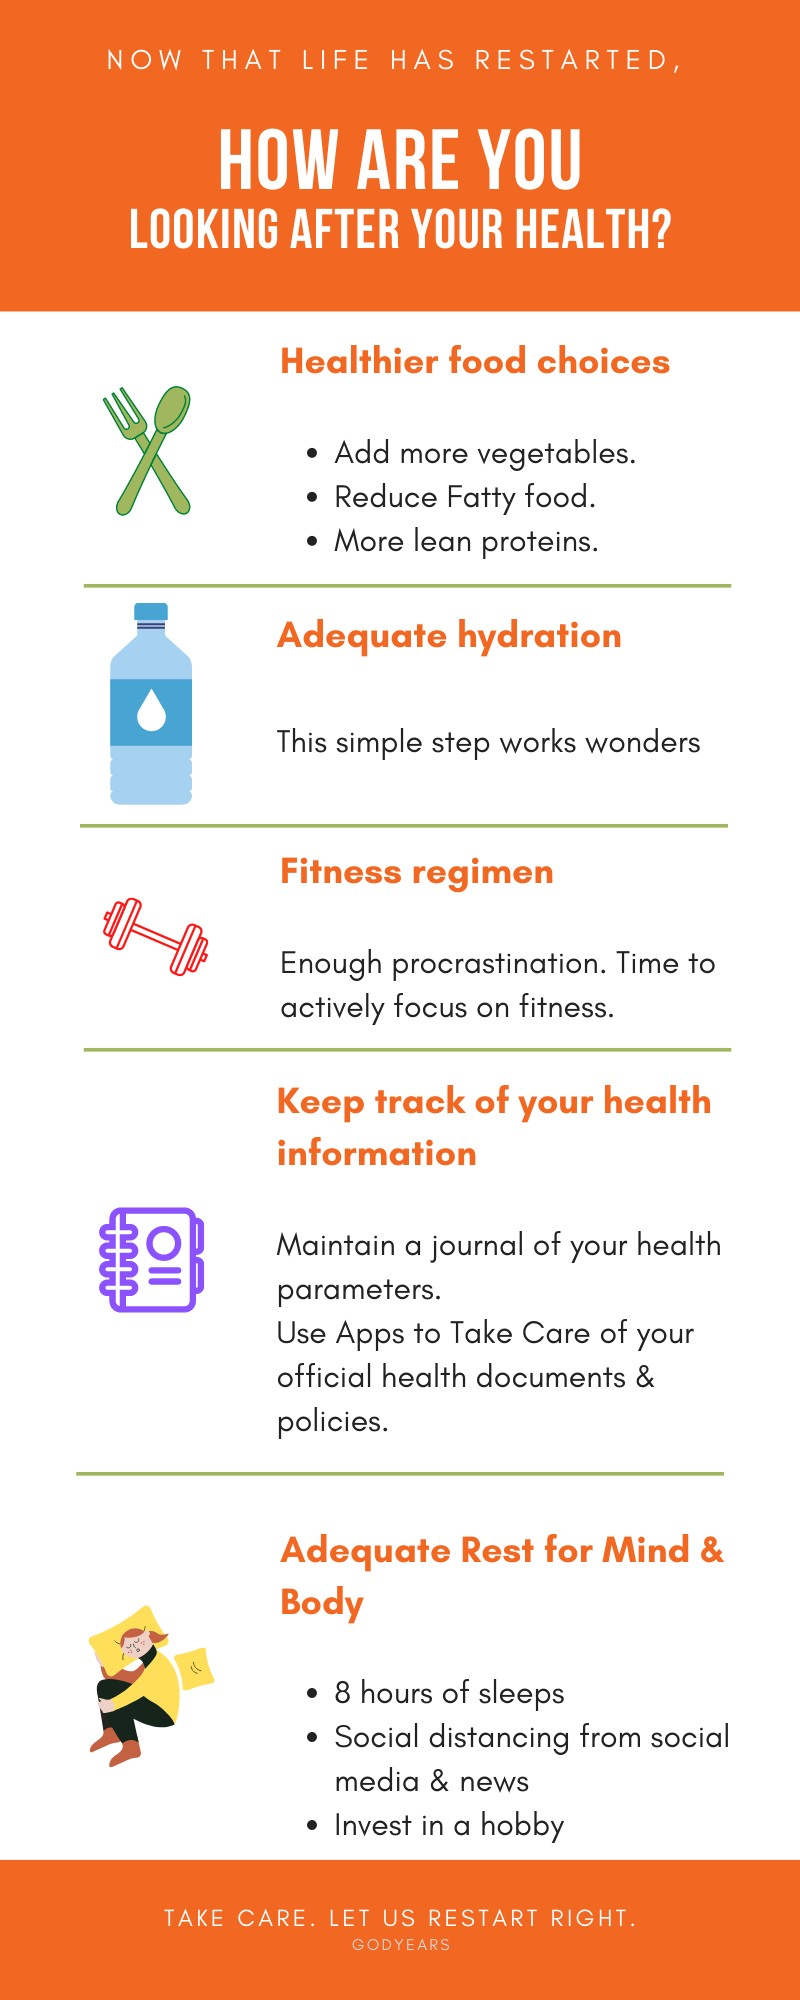 infographic explaining Tips to Stay Healthy after restarting life